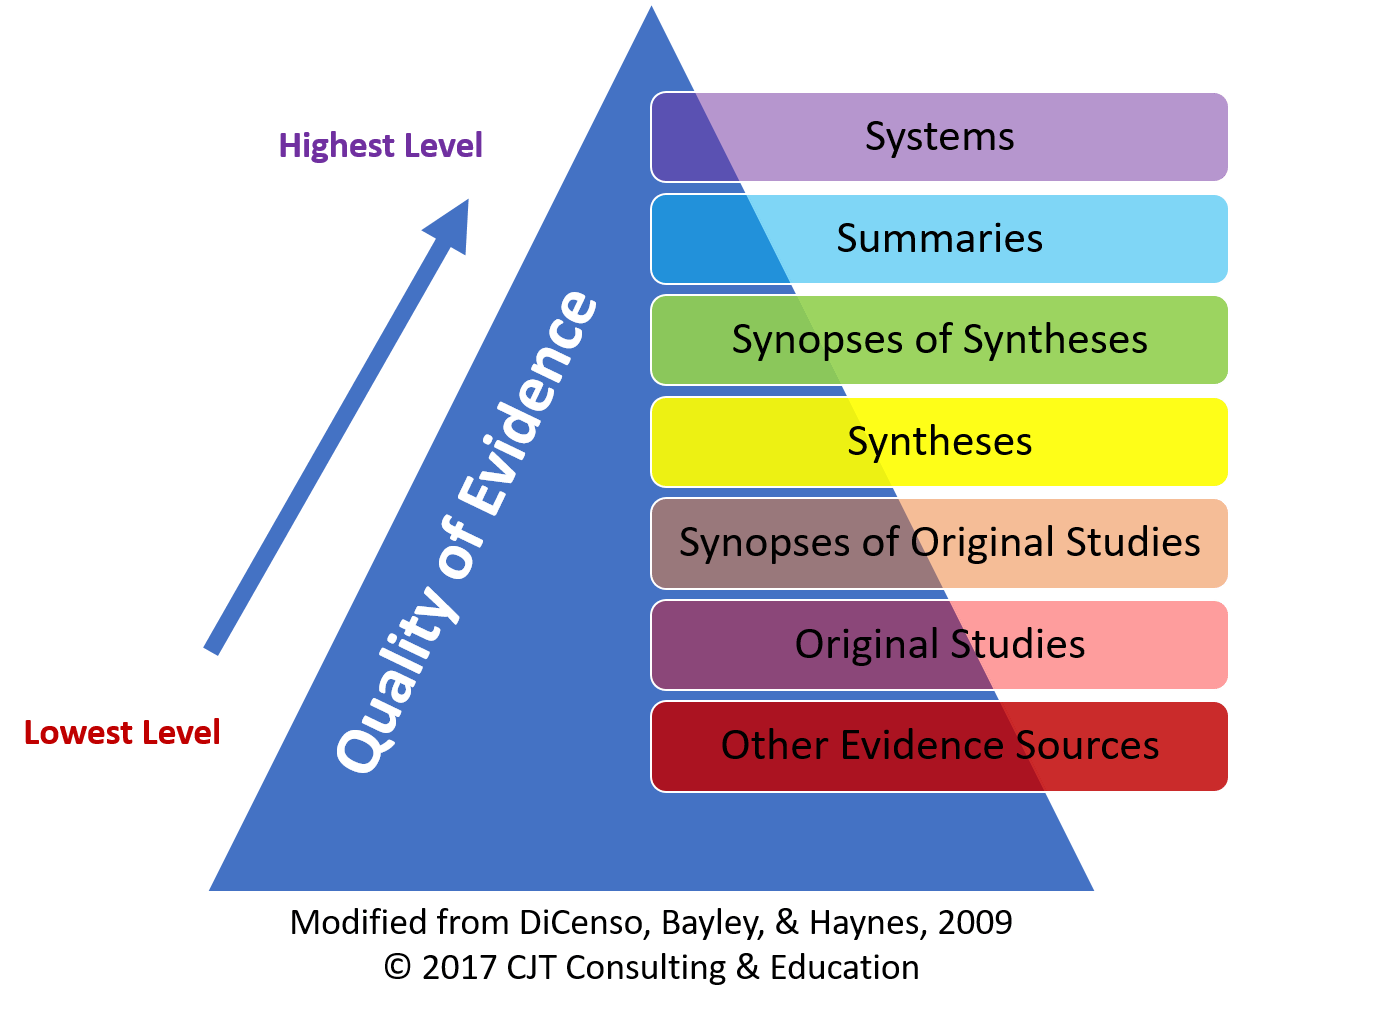 how to explain searches using the 6s pyramid